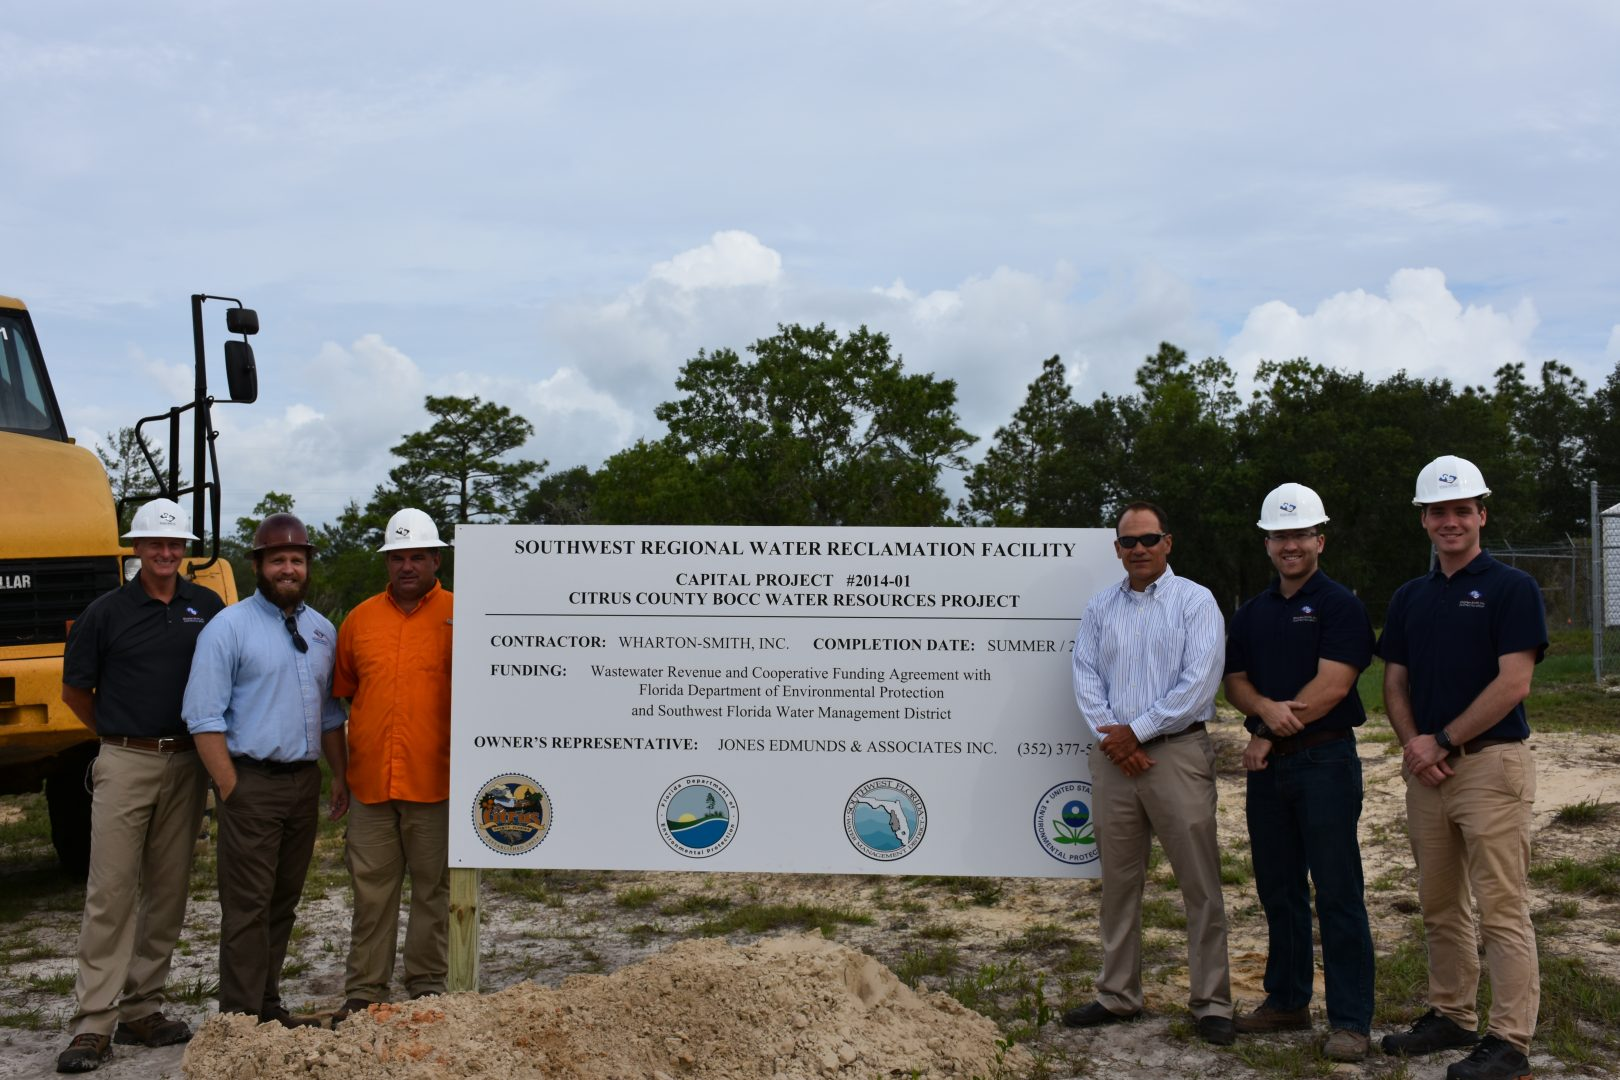 Wharton-Smith Breaks Ground on Southwest Regional Water Reclamation Facility in Citrus County